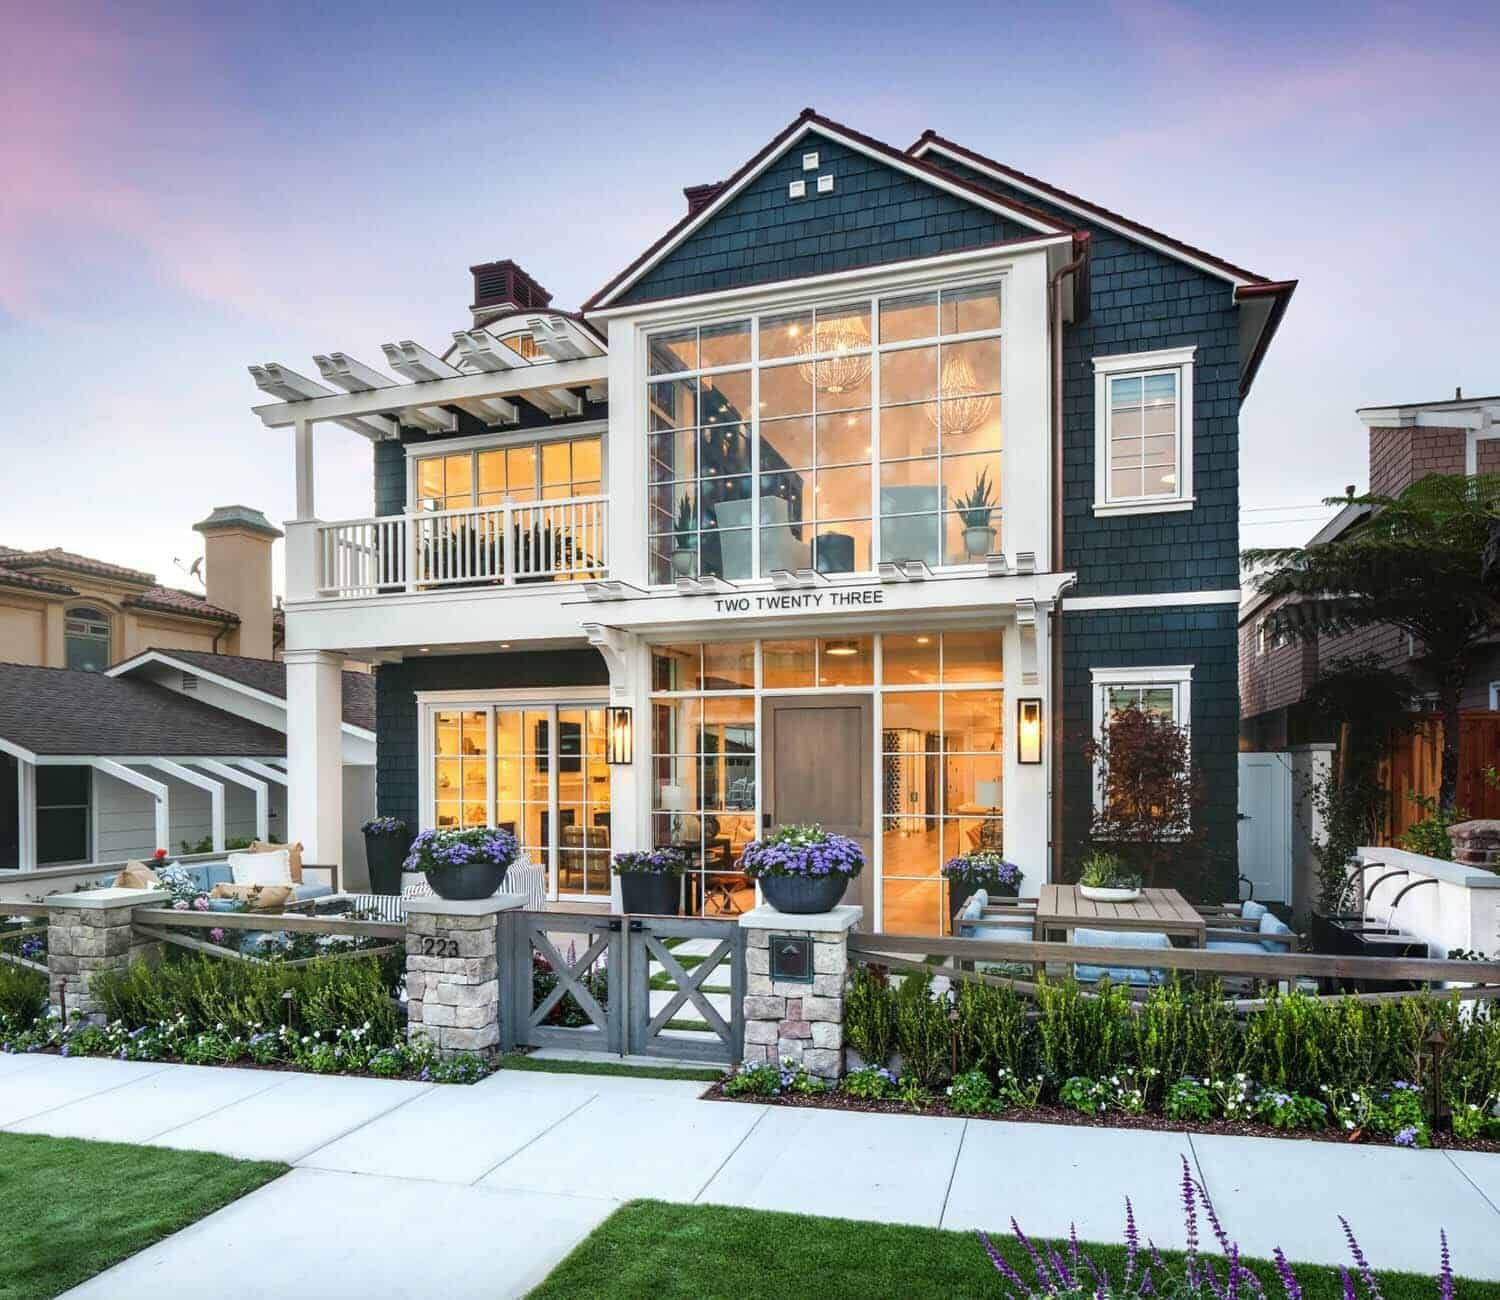 Stunning Modern Coastal Home With Inspiring Details In